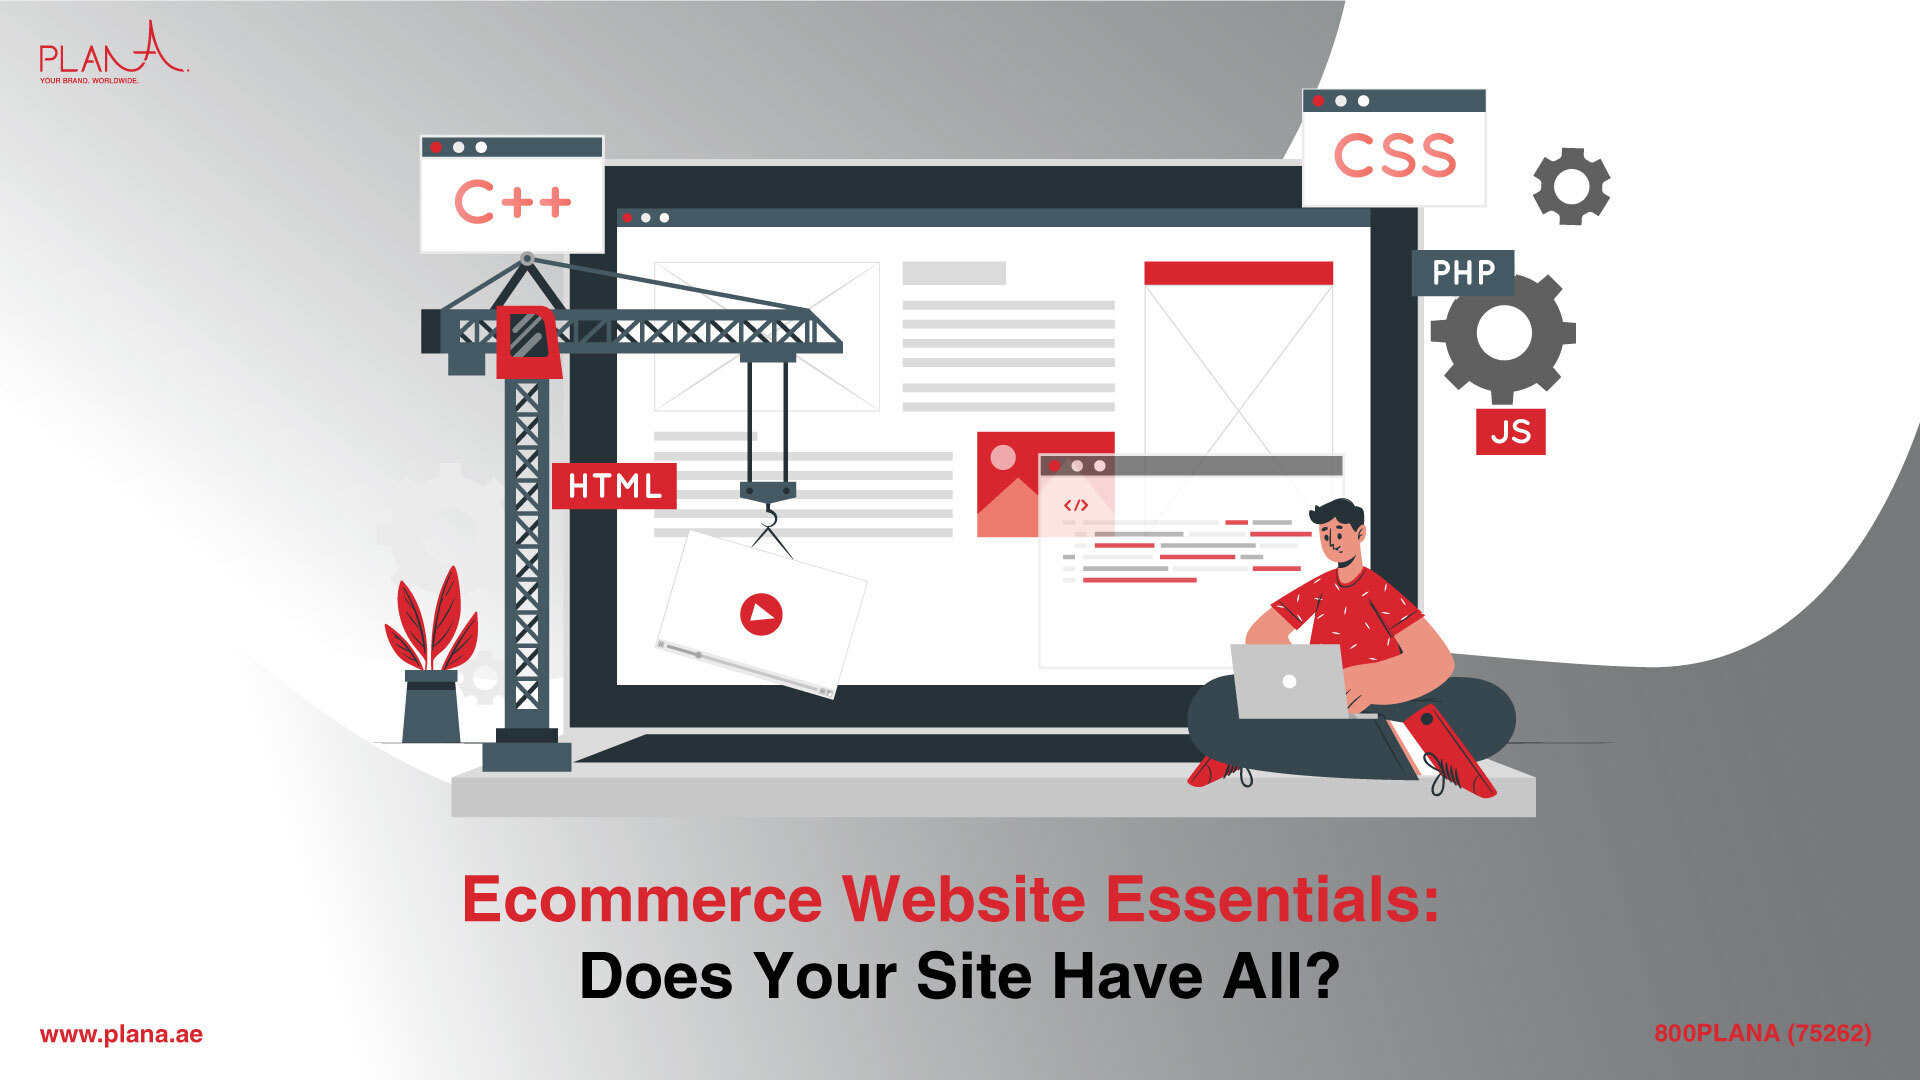 Ecommerce Website Essentials: Does Your Site Have All?